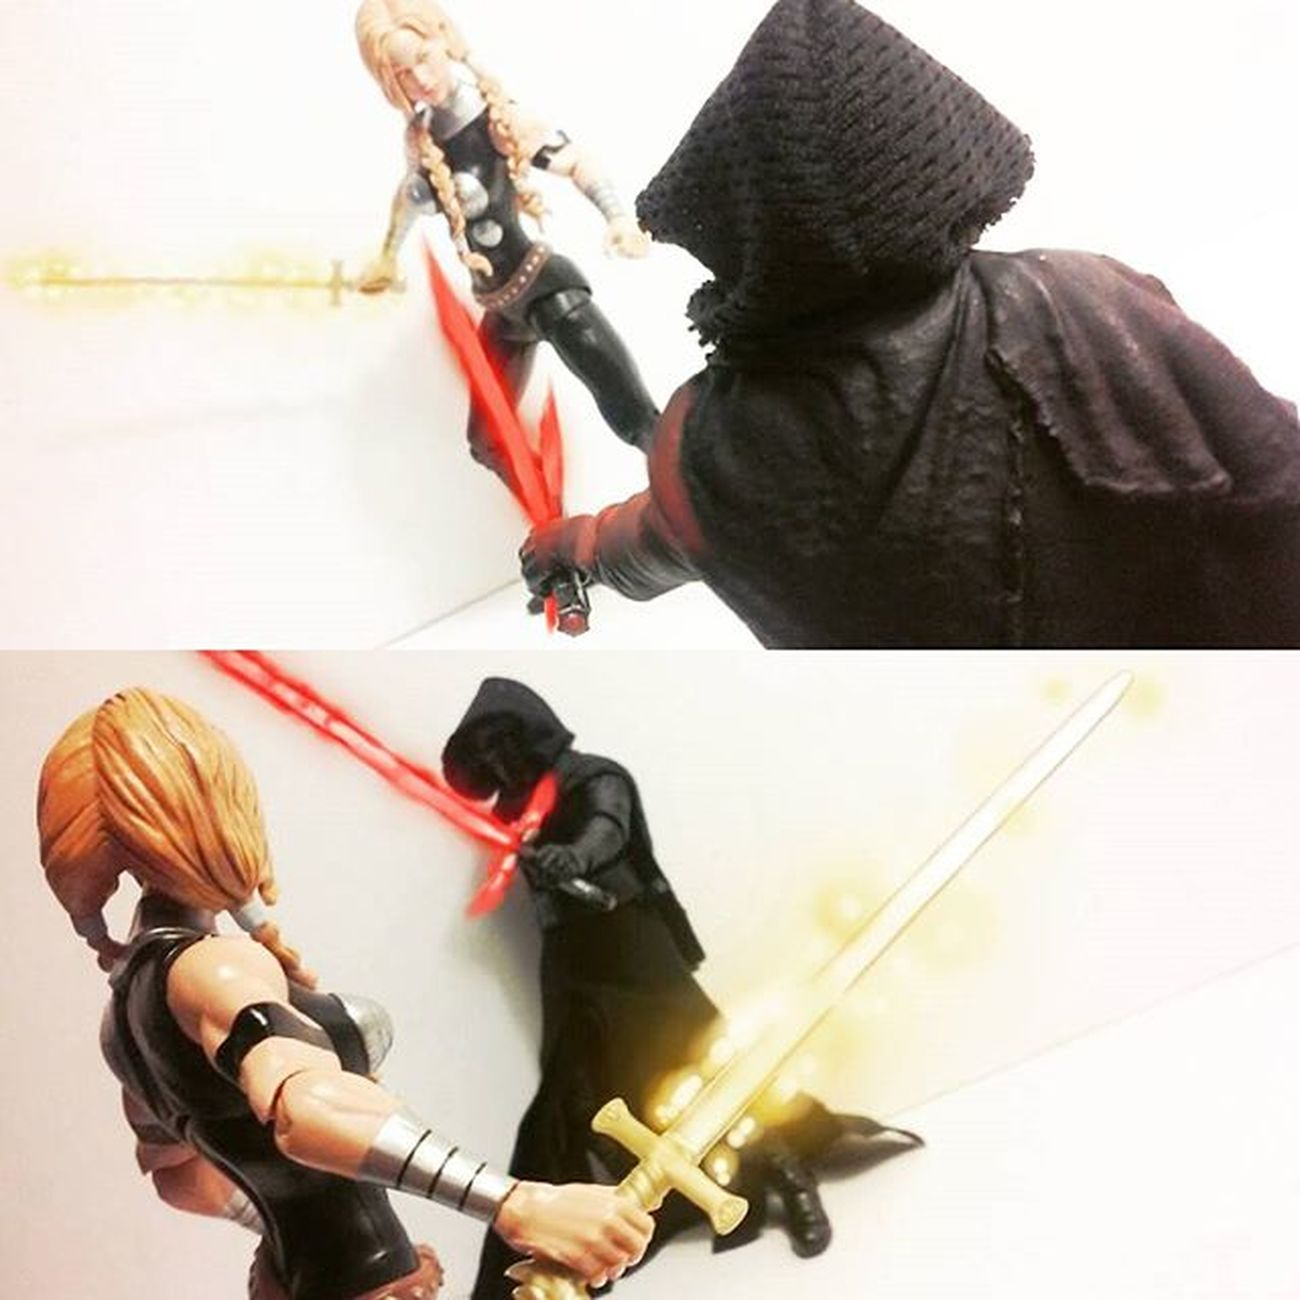 """You..woman! I demand you show me how to return to my world! And if you refuse I'll kill you!"" ""Thou dare to speak to me a asgaurdian woman in such a manner? I shall put you in your place!"" Marvellegends KyloRen Valkyrie Hasbro Manchild Starwarstheblackseries Starwars Theblackseries Blackseries Starwarstheforceawakens ForceAwakens Disney Toyslagram Toyphotography Toycommunity ACBA Articulatedcomicbook Actionfigures Toyunion Actionfiguresphotography Tcb_peekaboo Tcb_flyupandaway Thor  Comics Nerd actiontoyart Figurescollection figures collector anarchyalliance"